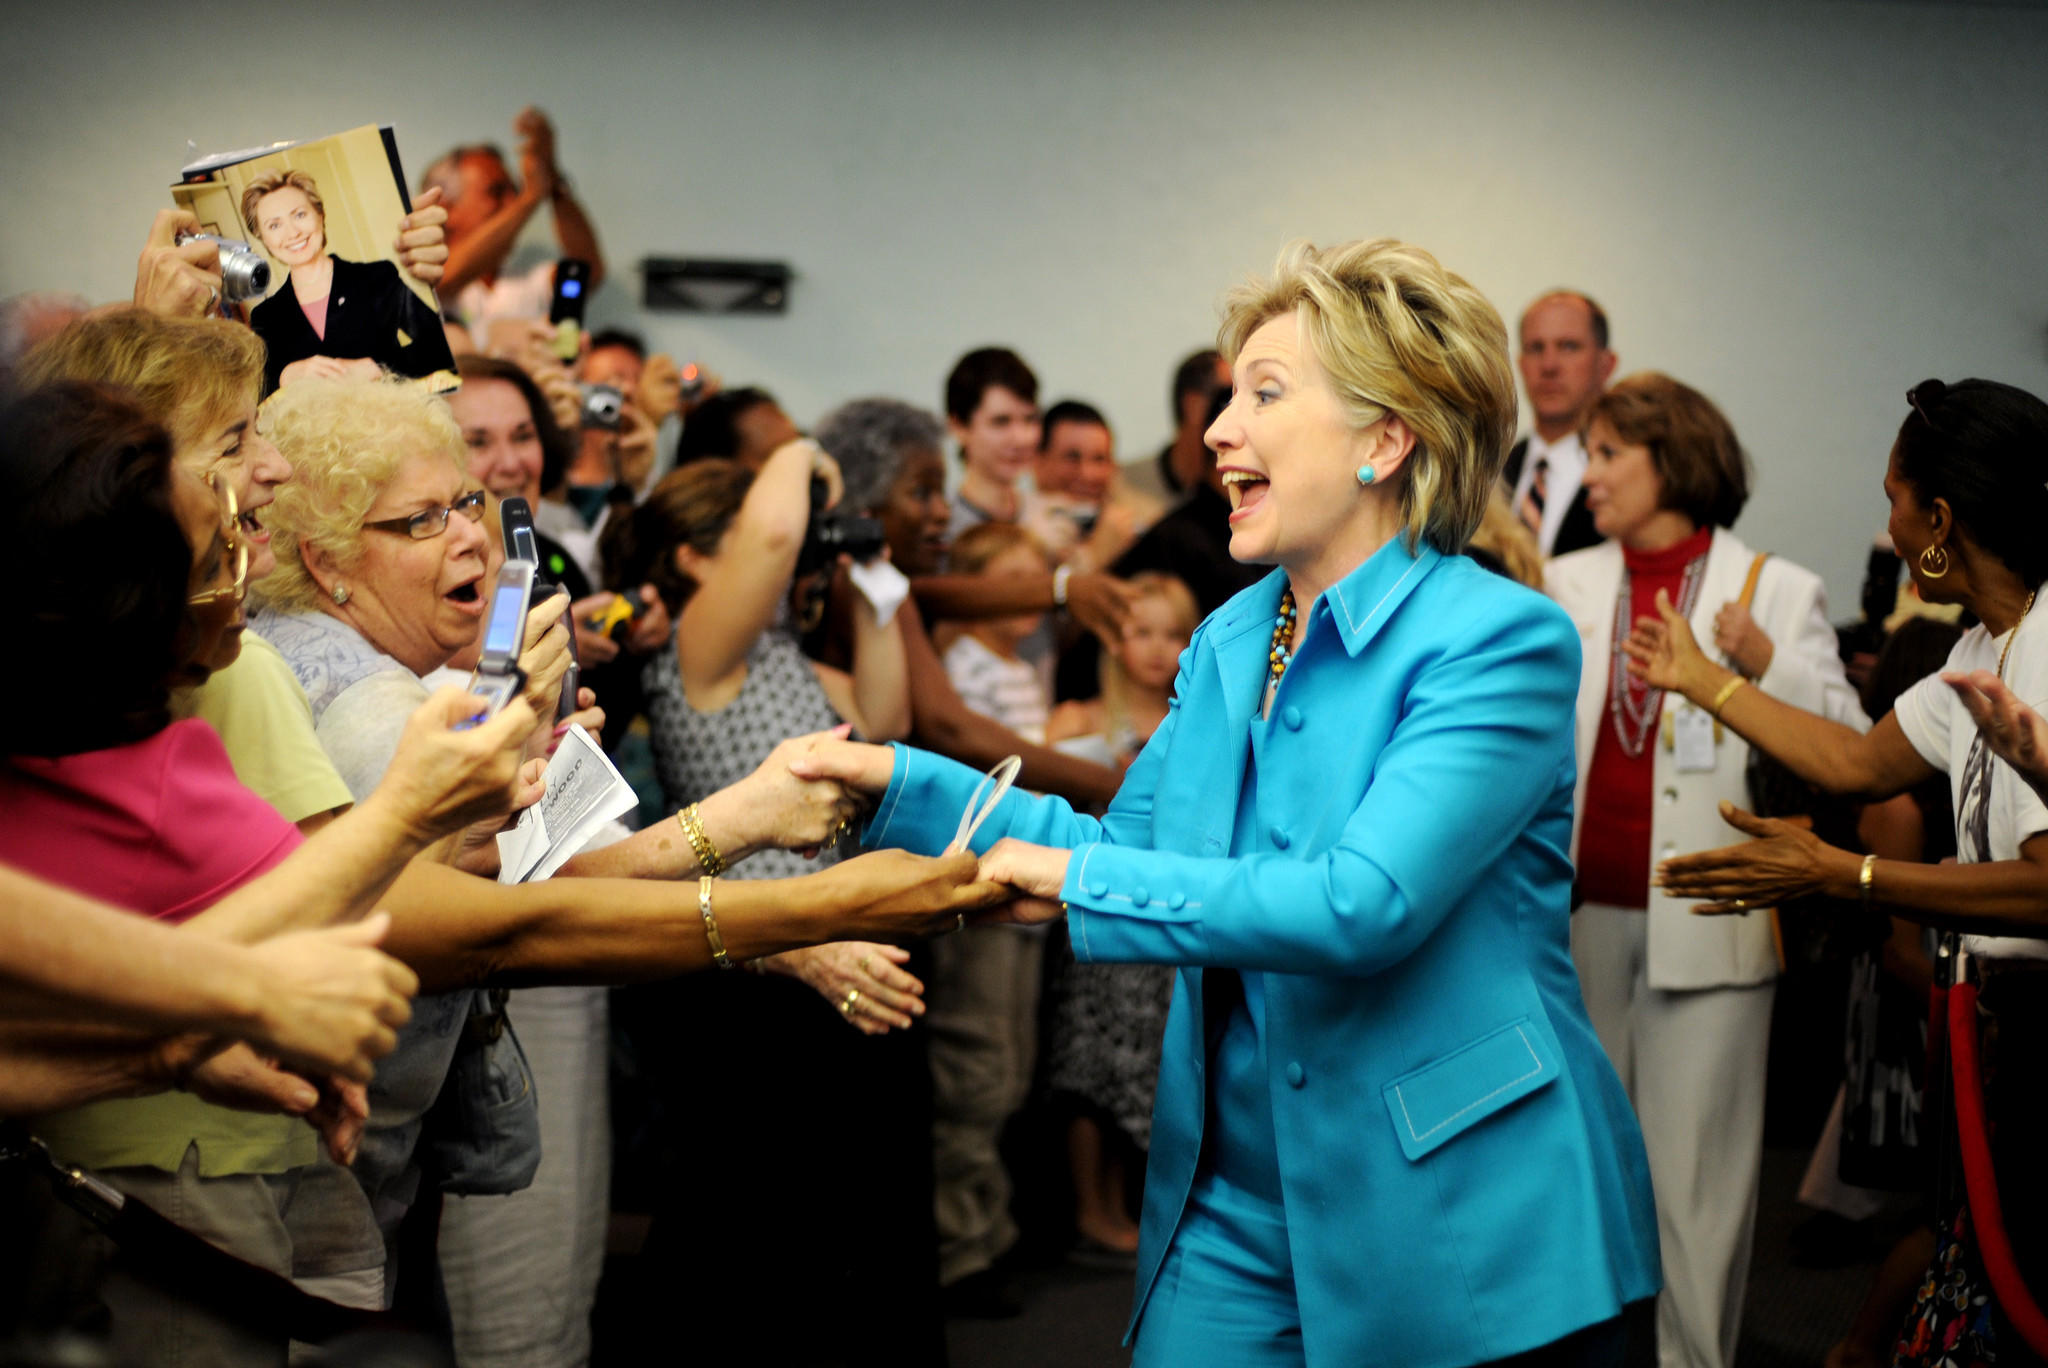 Then-Democratic presidential hopeful Sen. Hillary Clinton greets supporters at Sunrise Lakes Clubhouse in Sunrise, FL on Wednesday May 21, 2008. (Staff photo Carey Wagner/ South Florida Sun-Sentinel)